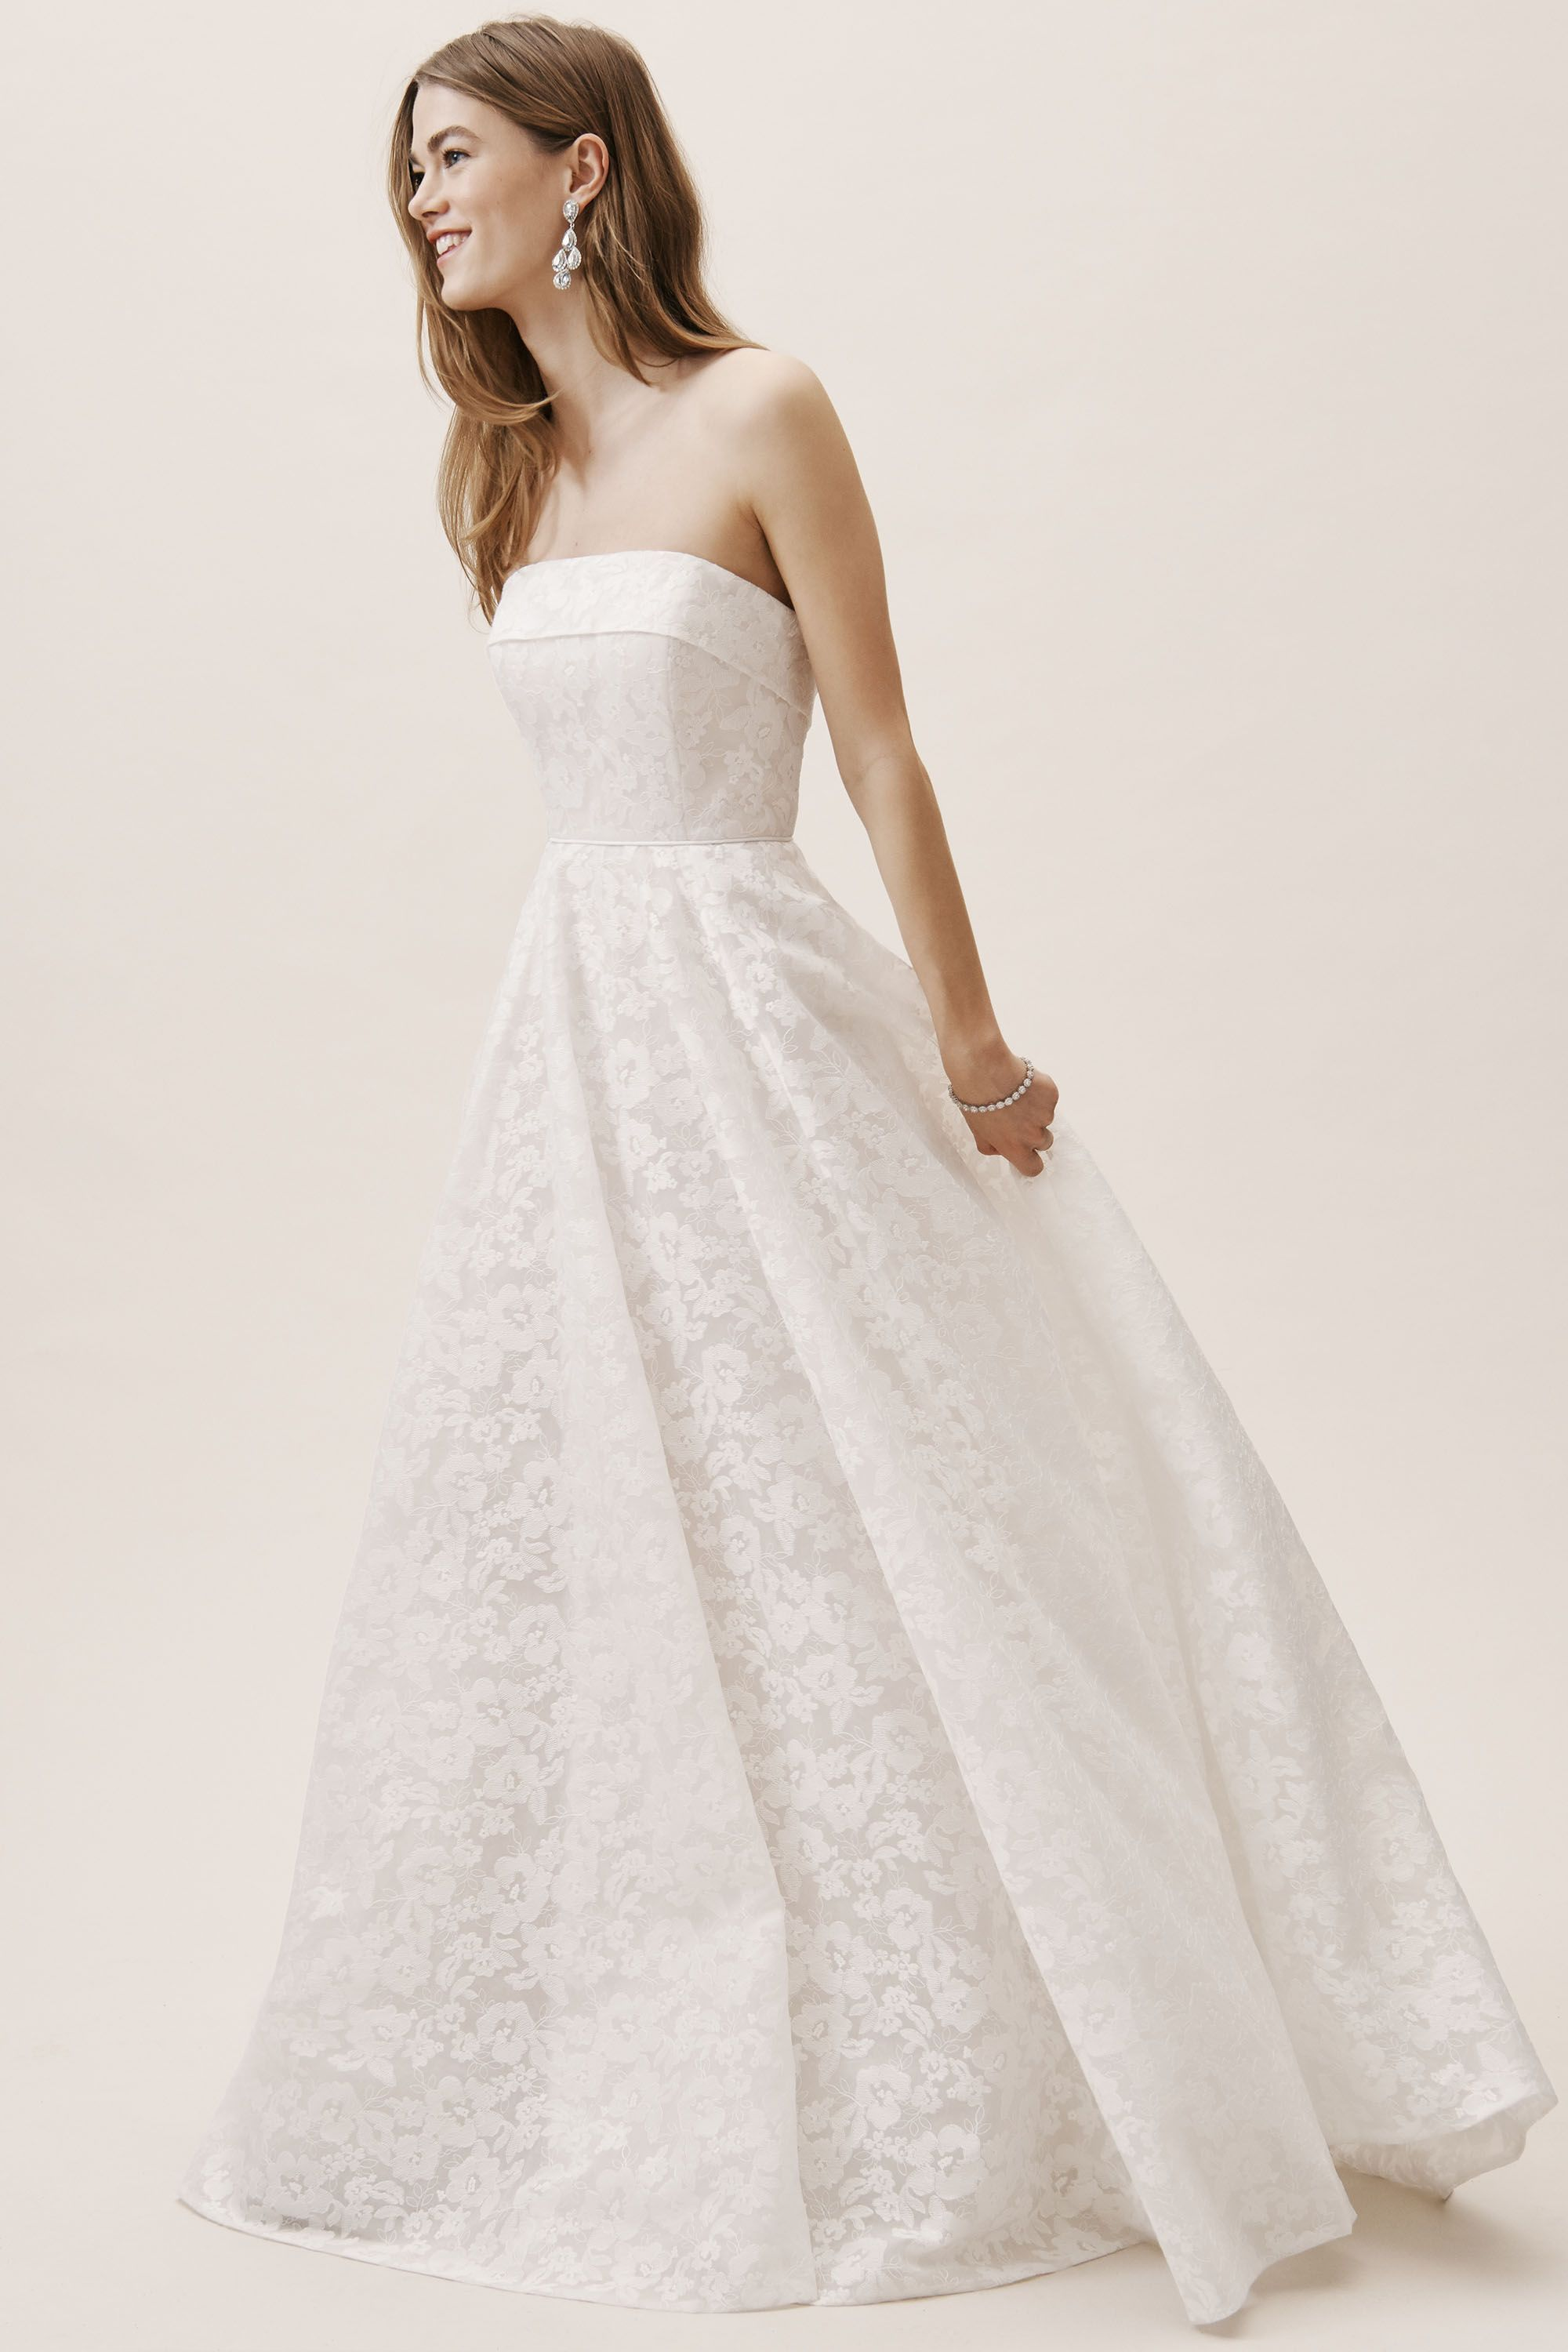 Maine Gown White Blush In Bride Bhldn Sponsored White Gown